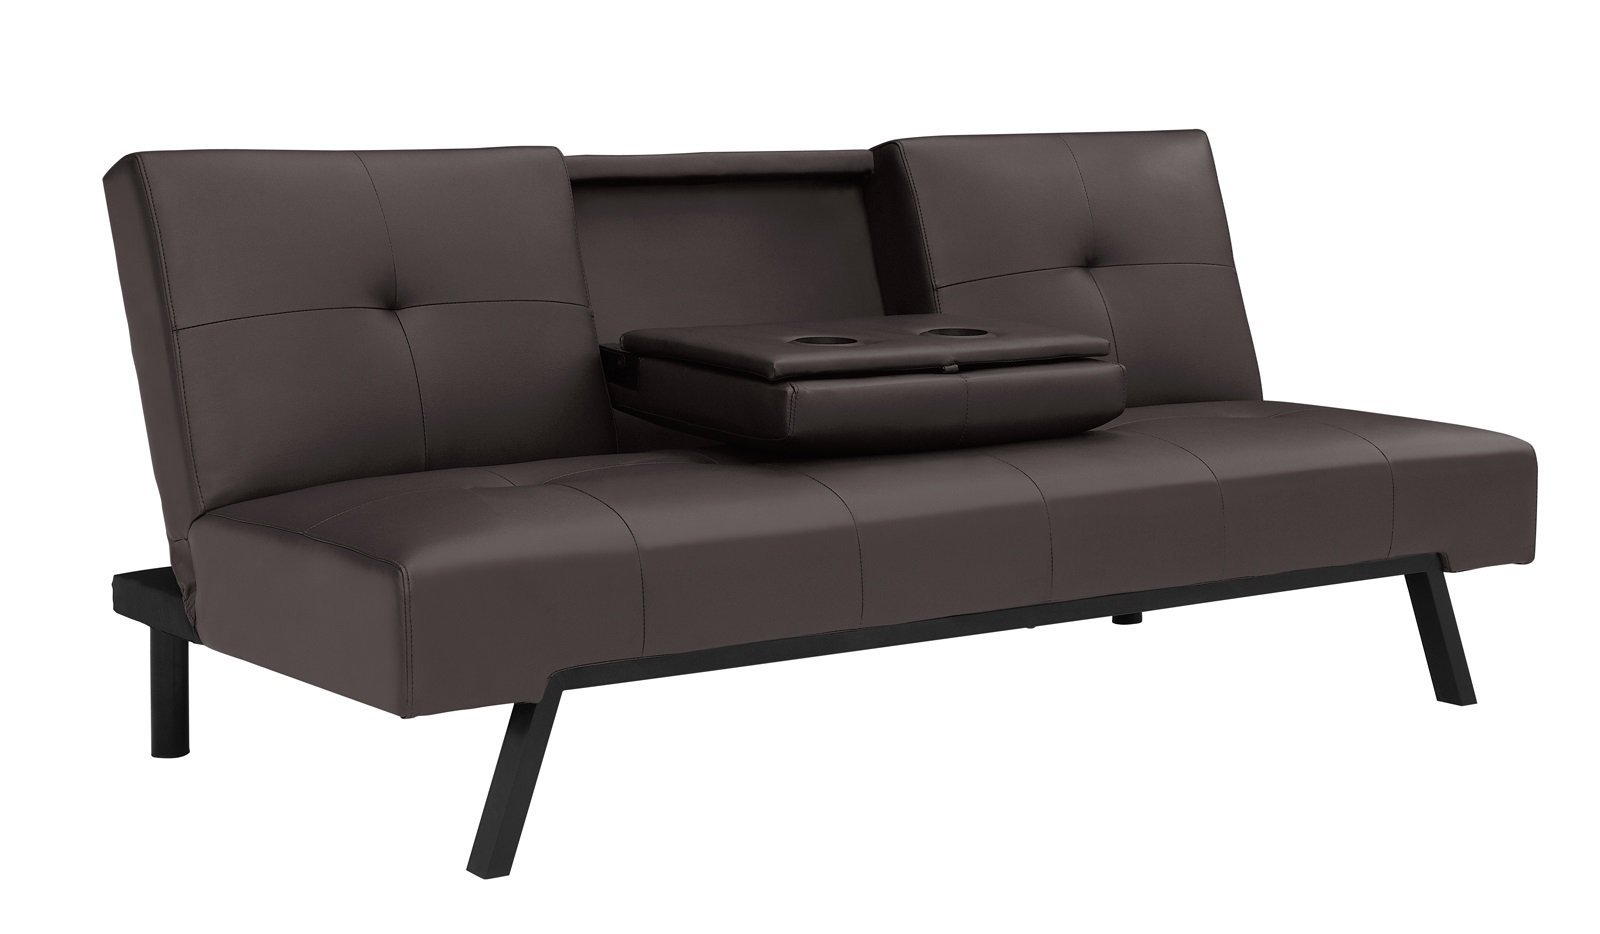 DHP Wynn Futon Couch with Fold-Down Cup Holder - Brown by DHP